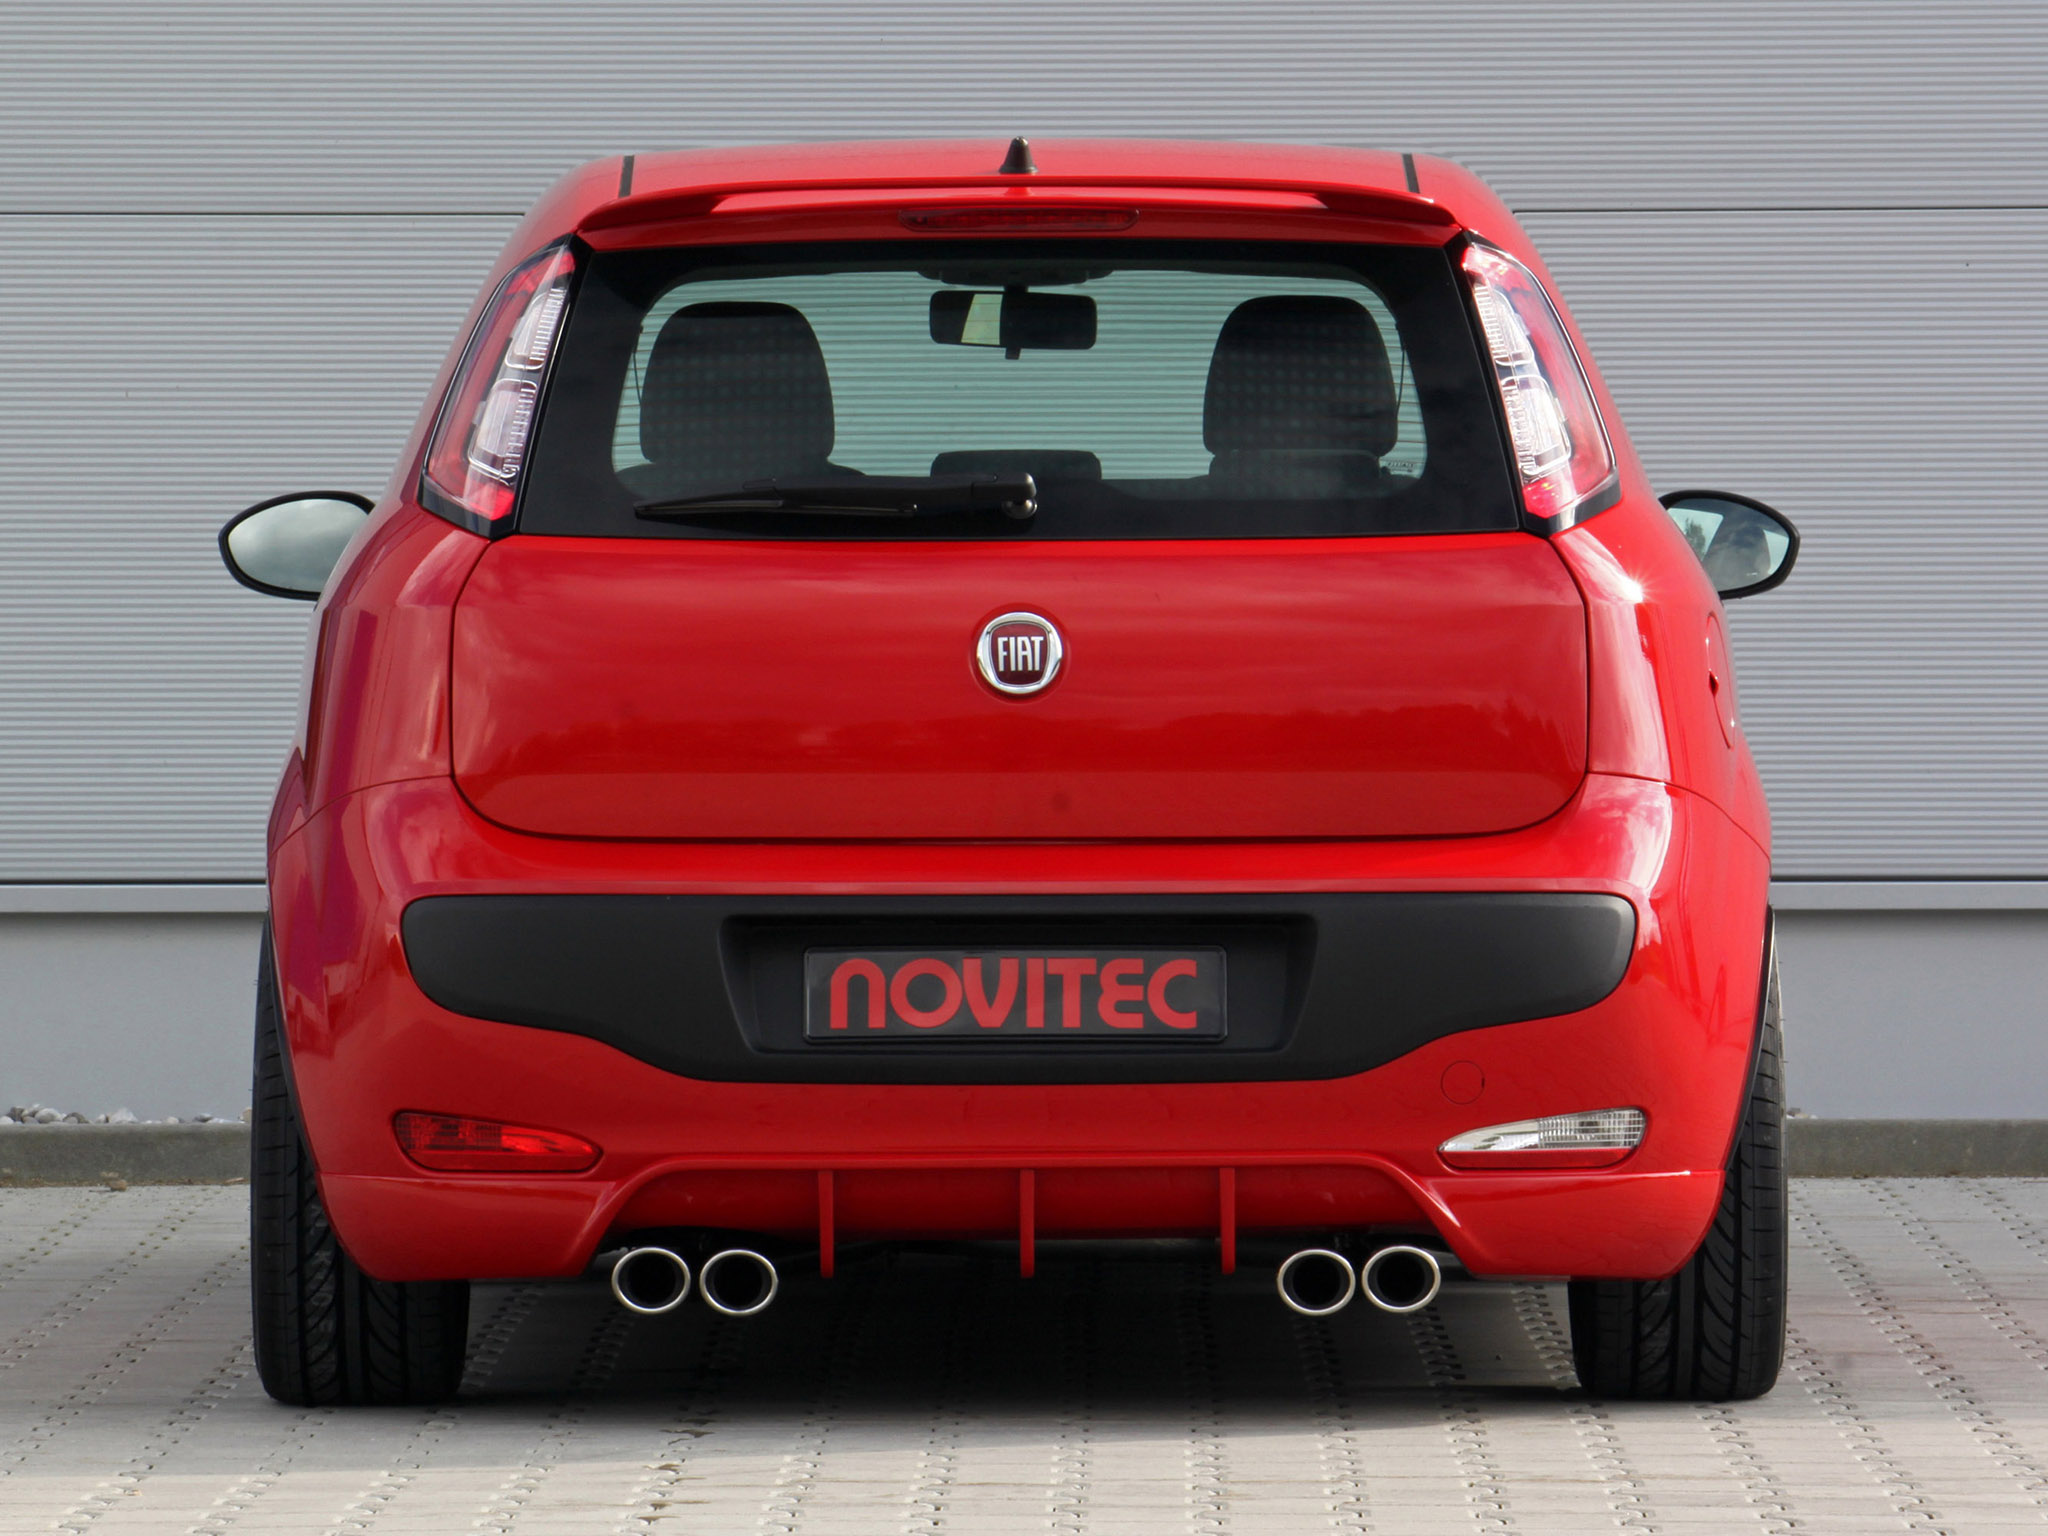 novitec fiat punto evo 2010 novitec fiat punto evo 2010 photo 06 car in pictures car photo. Black Bedroom Furniture Sets. Home Design Ideas